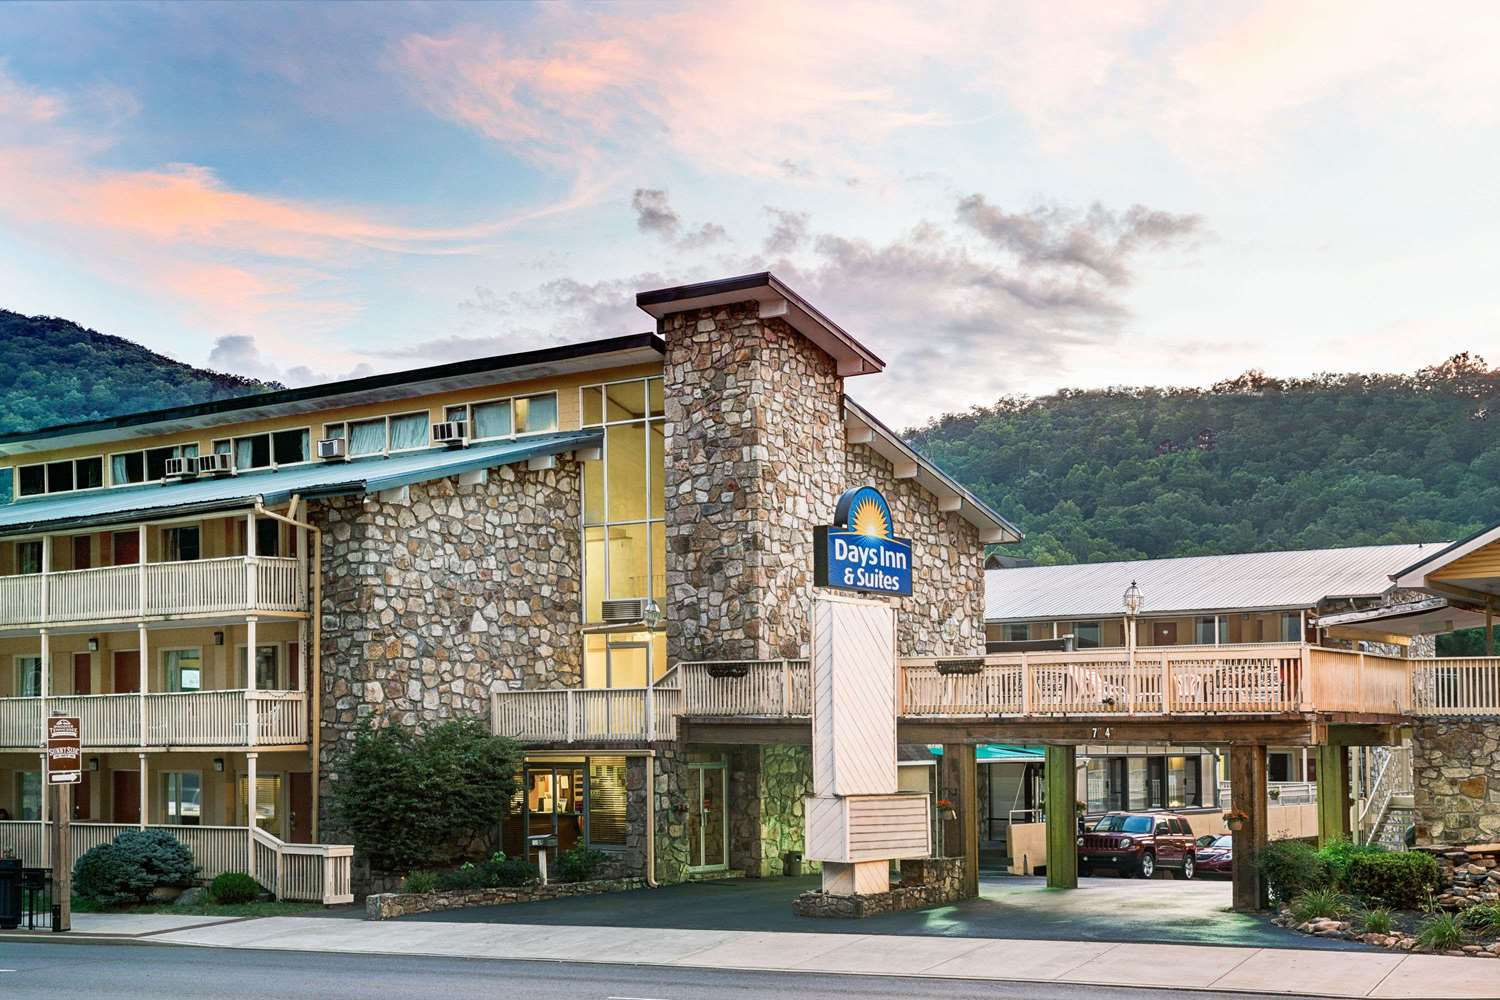 Days Inn Amp Suites Downtown Gatlinburg Parkway Tn See